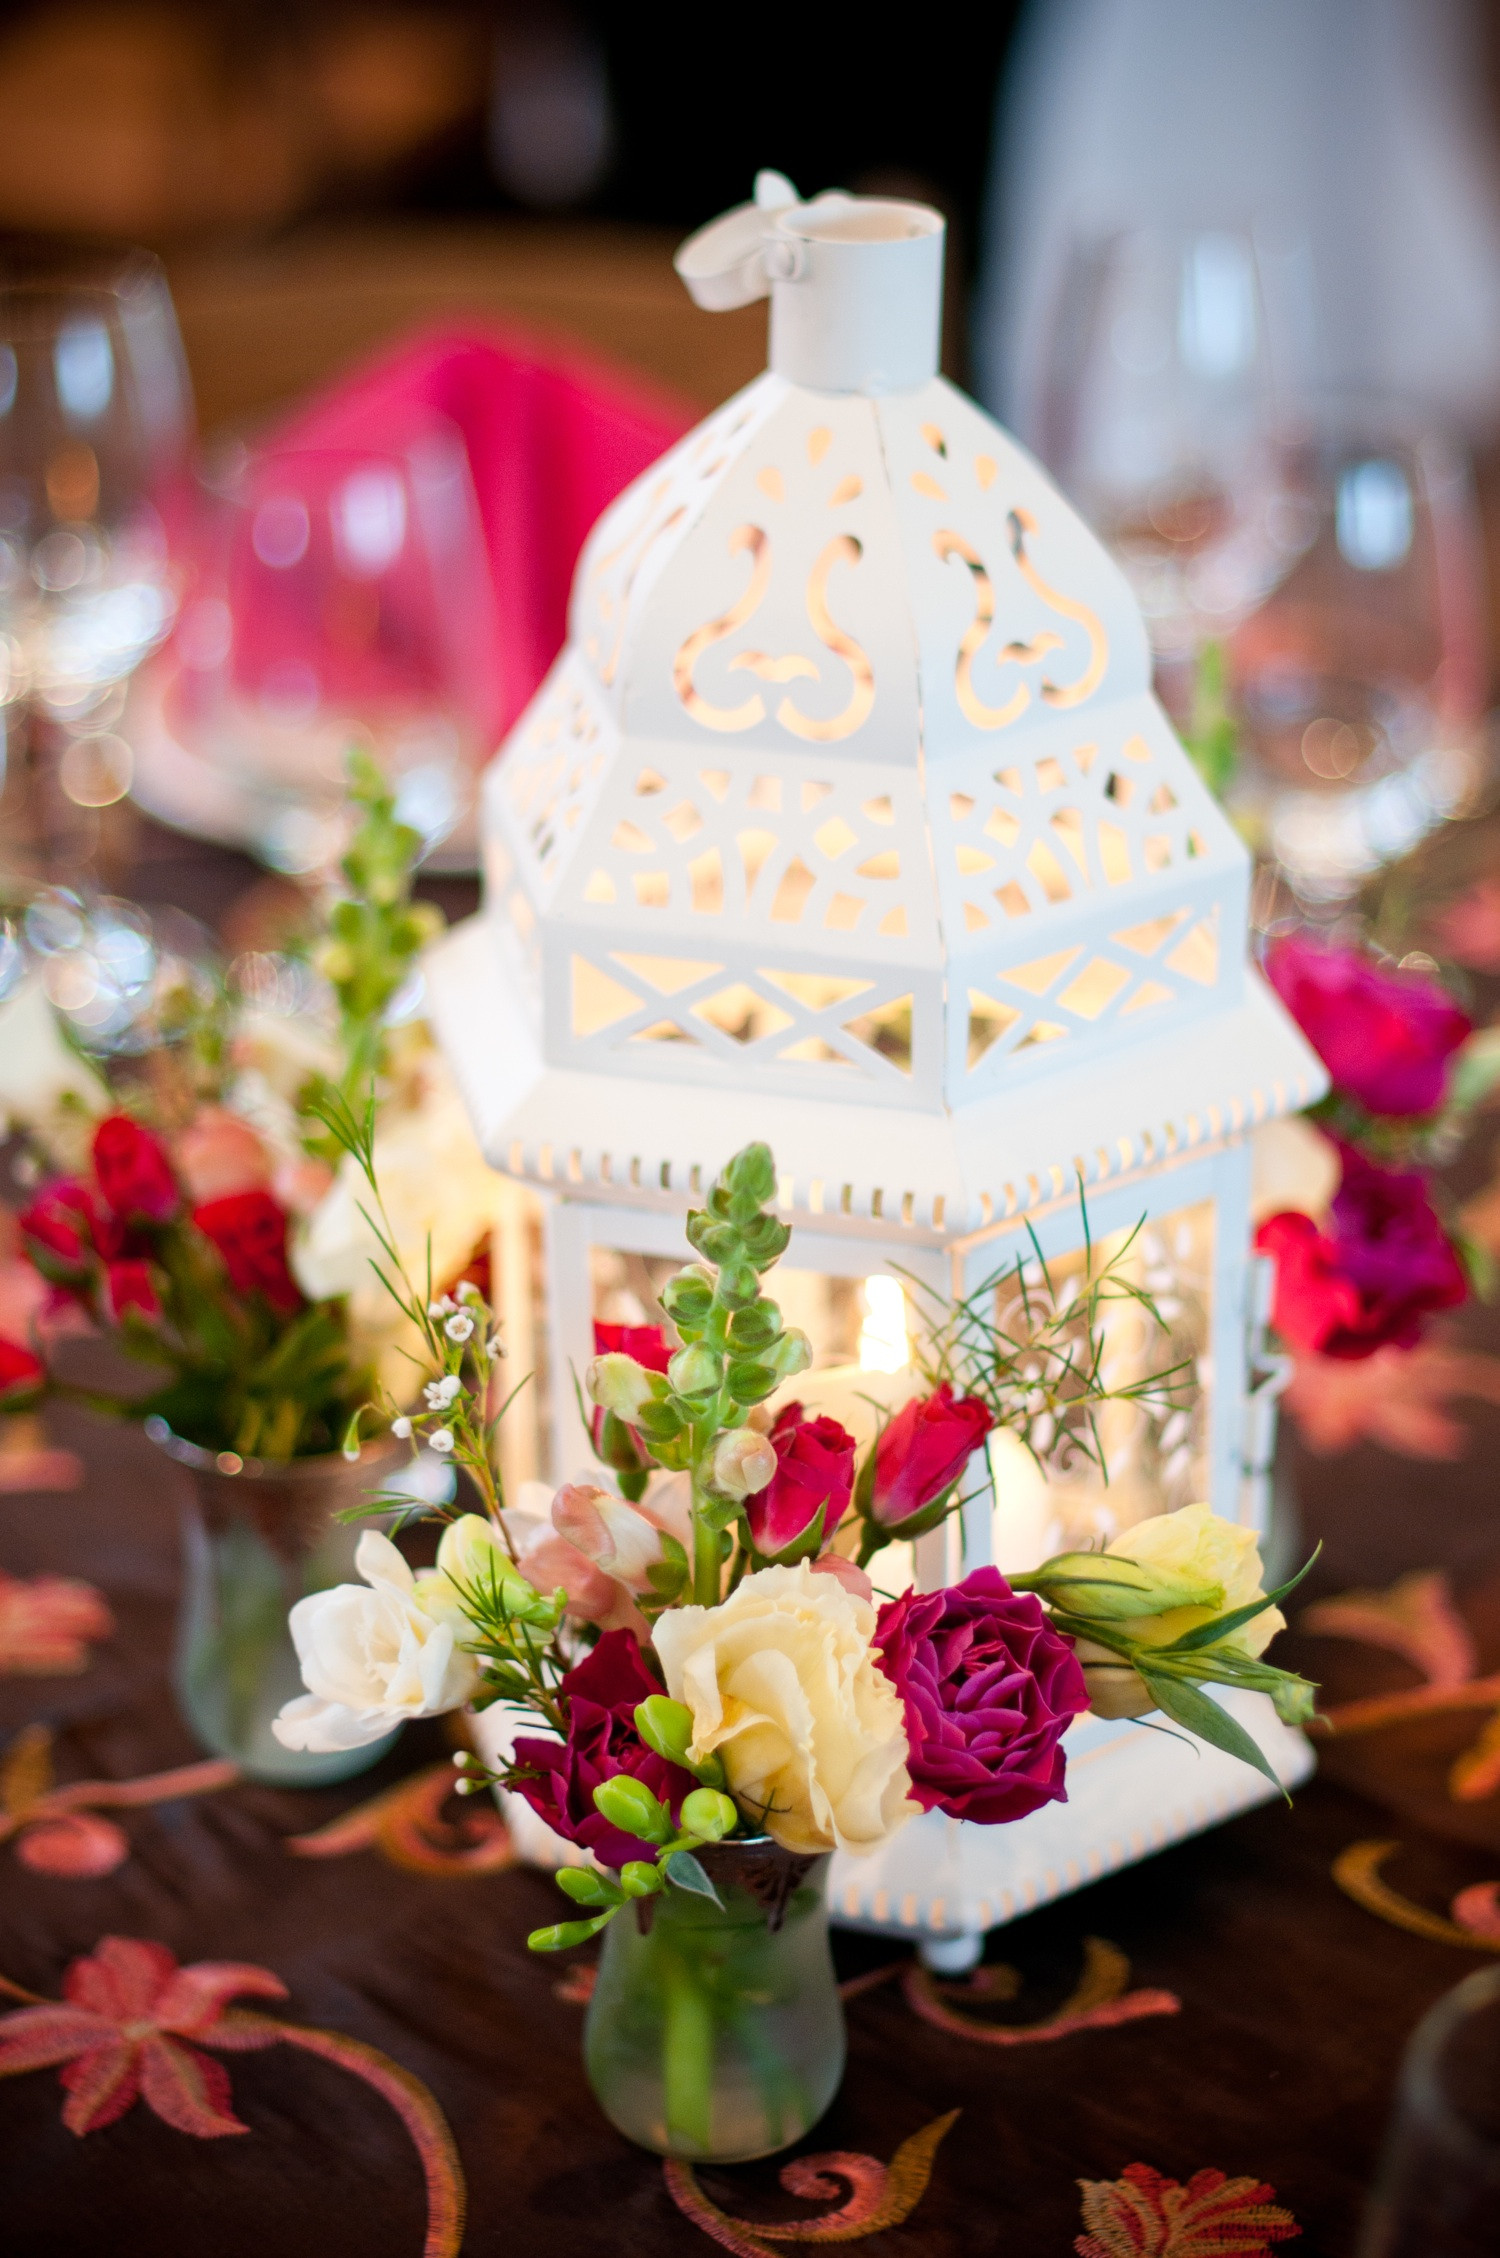 Best ideas about DIY Centerpieces For Wedding Receptions . Save or Pin DIY wedding reception centerpiece with pink wedding Now.